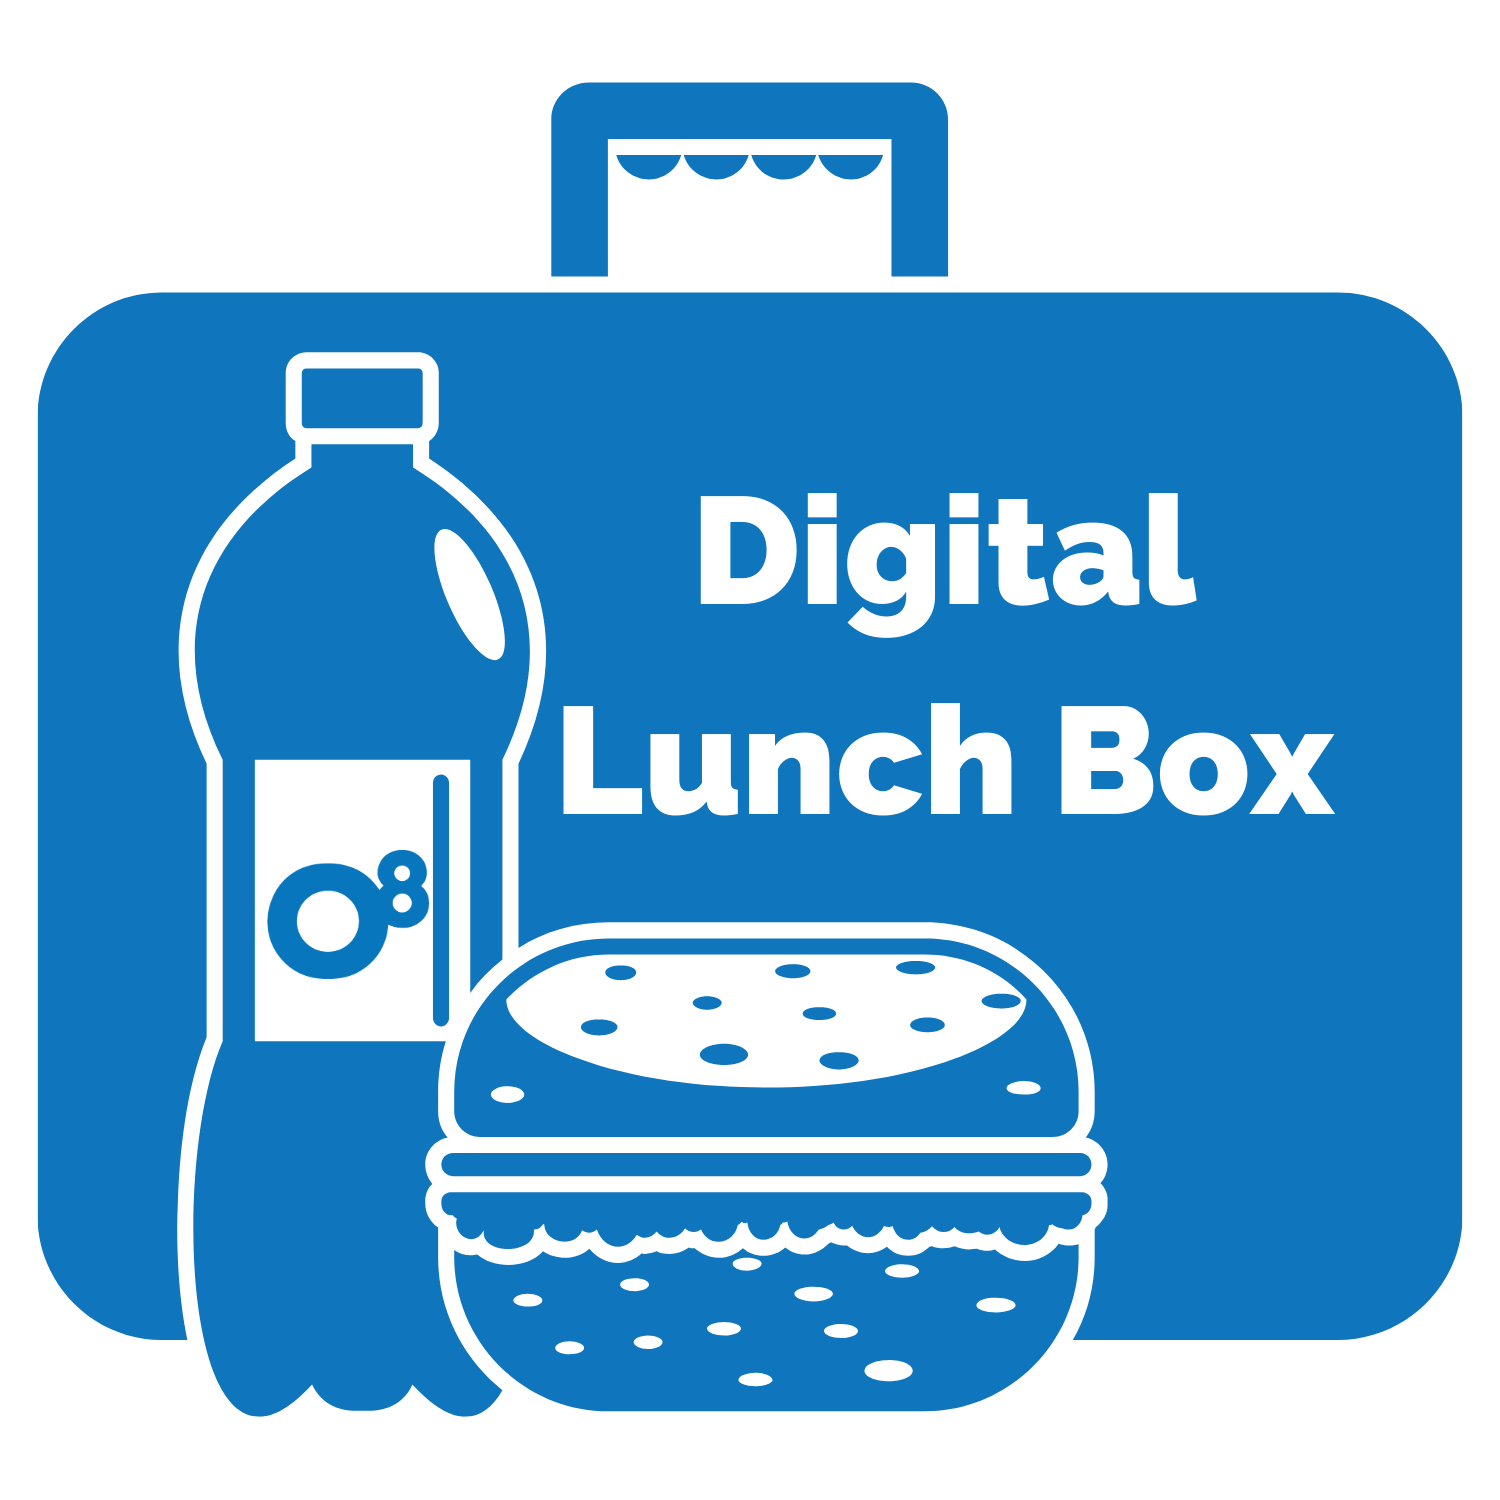 Digital Lunch Box